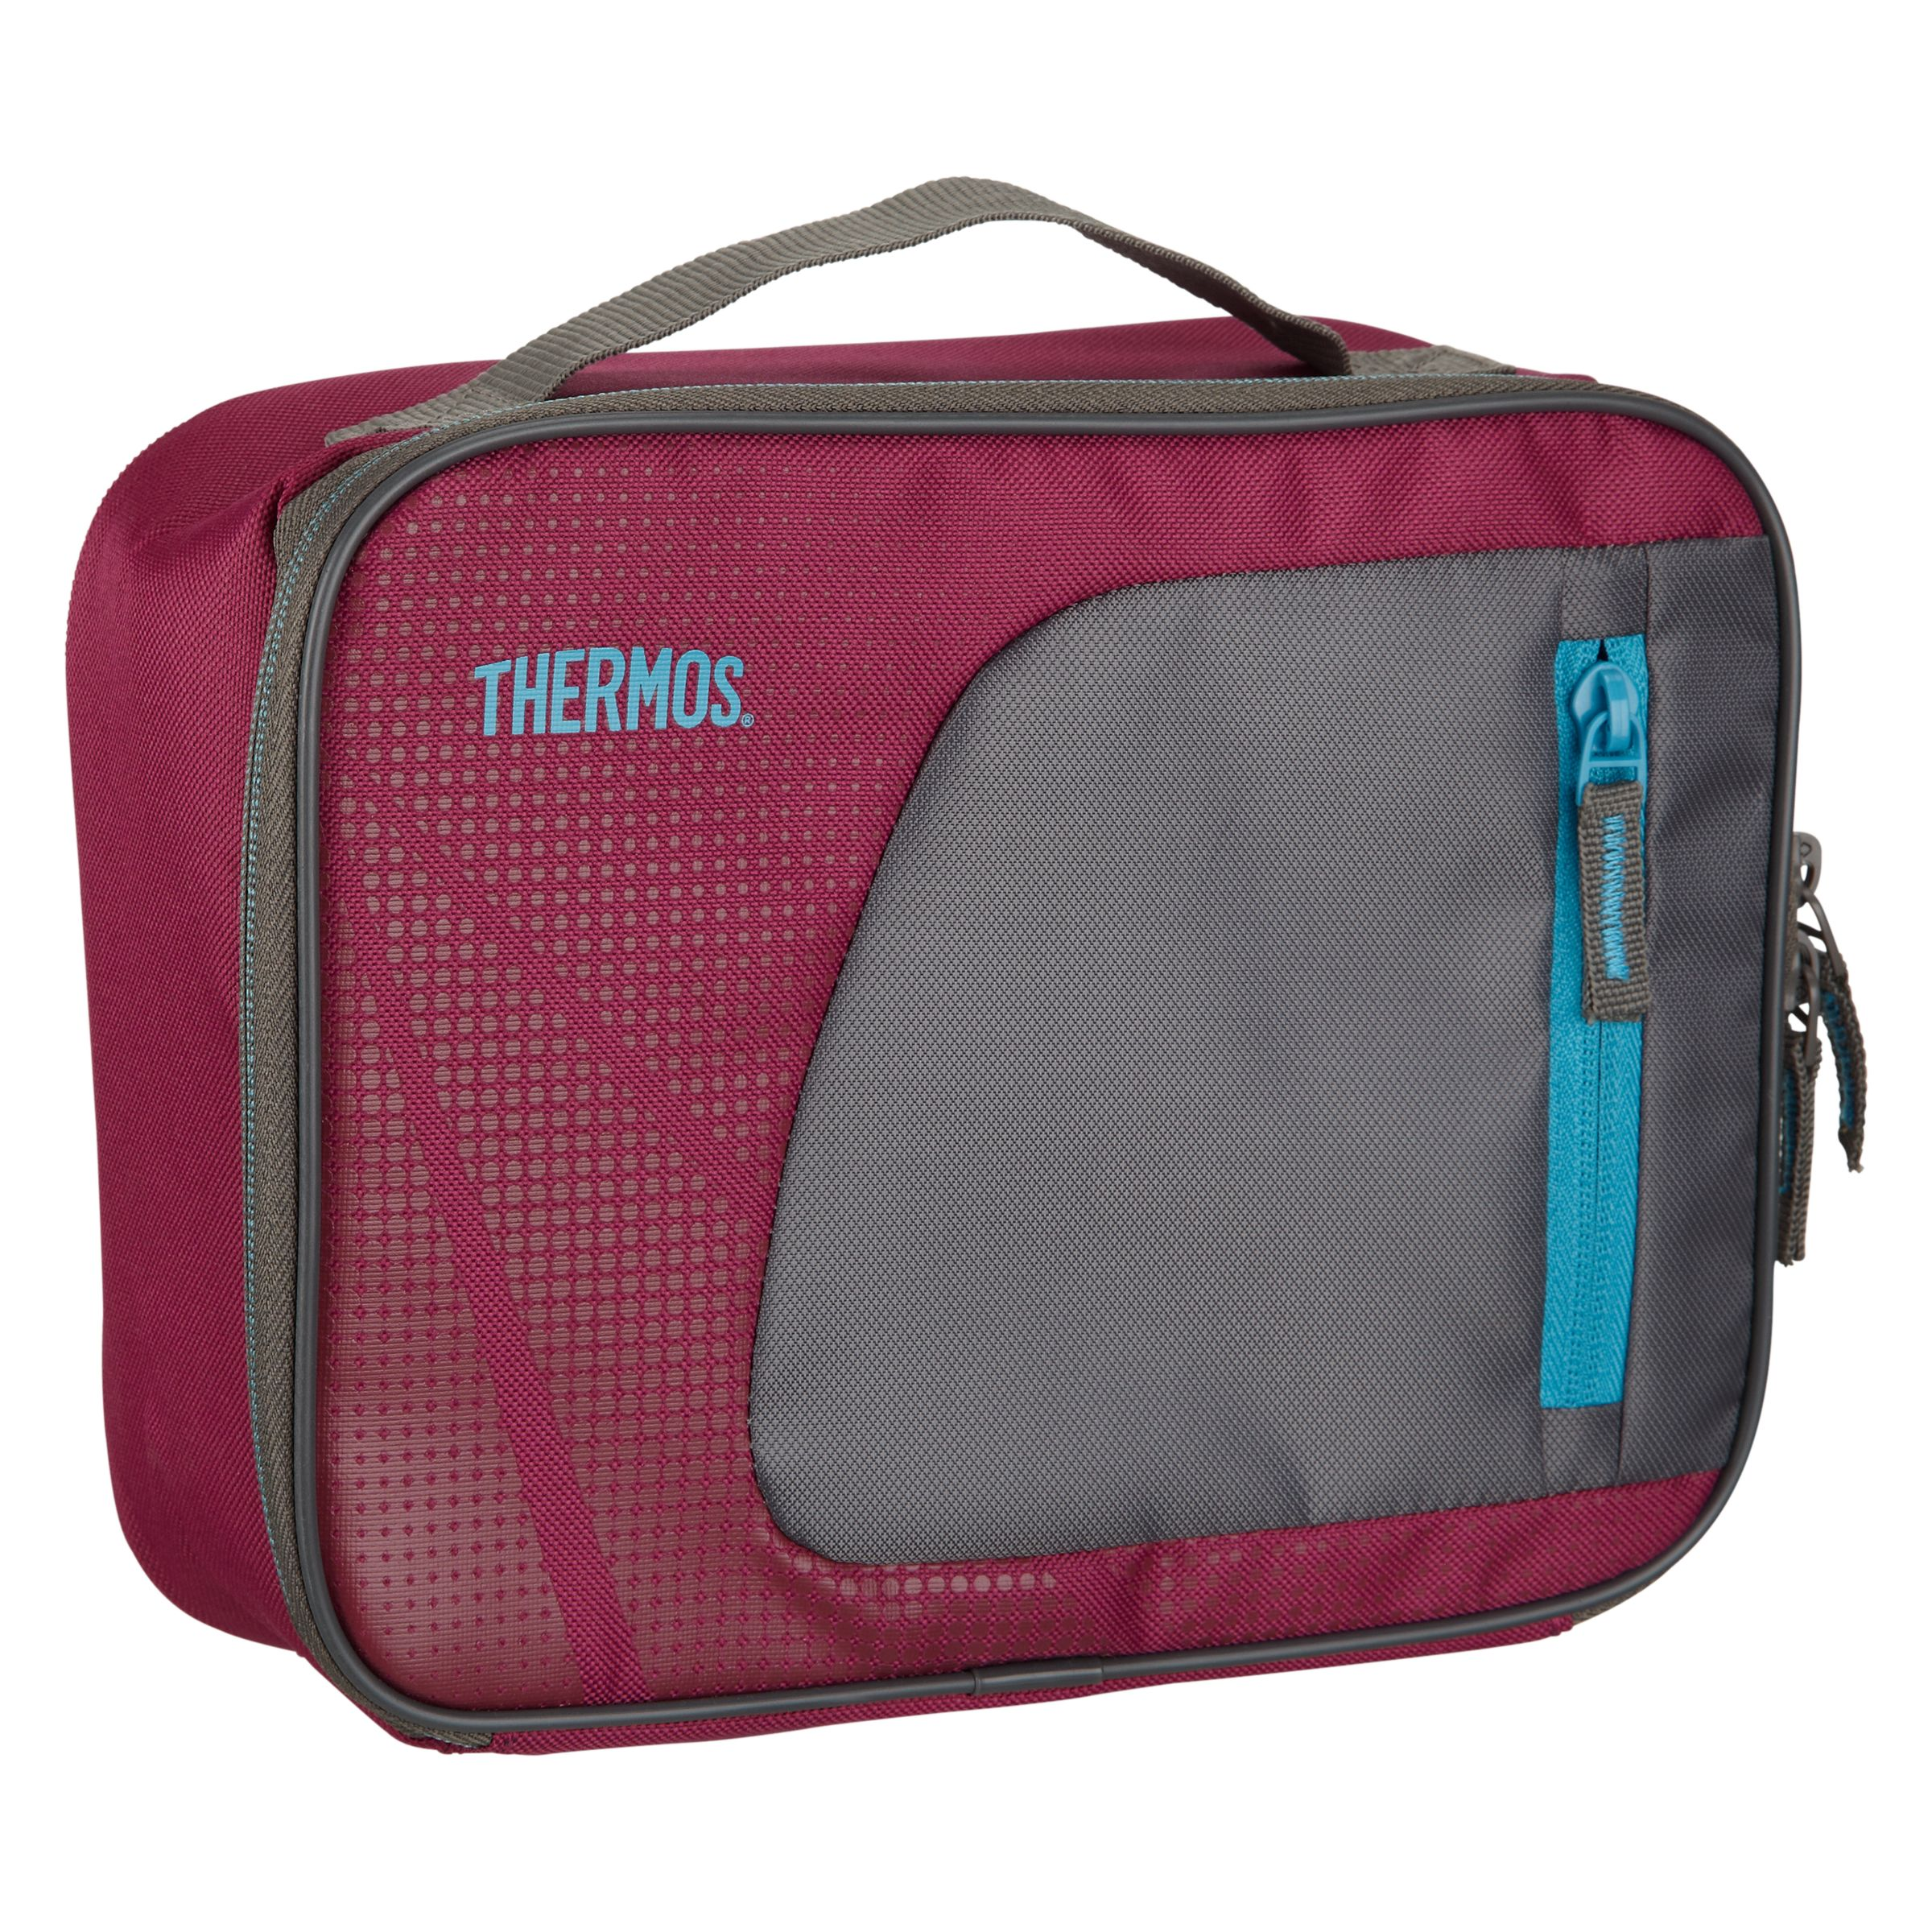 Thermos Lunch Bag, Blue